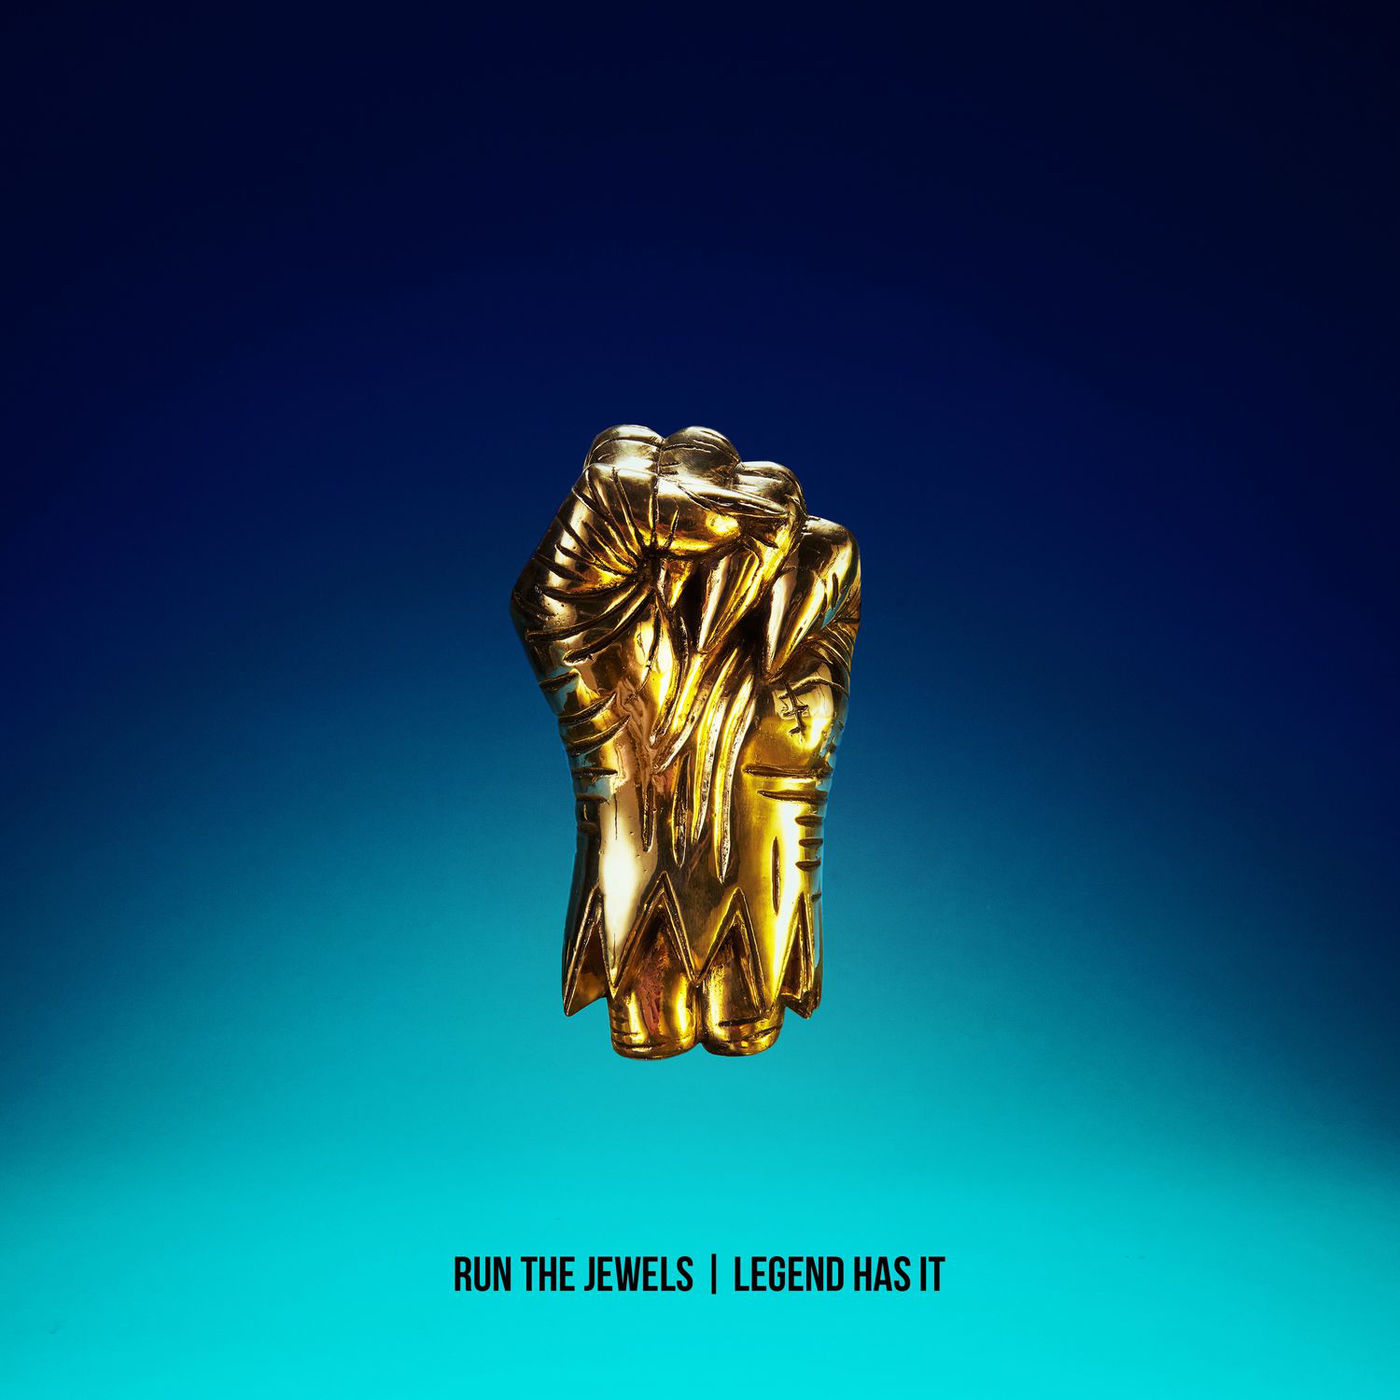 Run The Jewels - Legend Has It - Single Cover